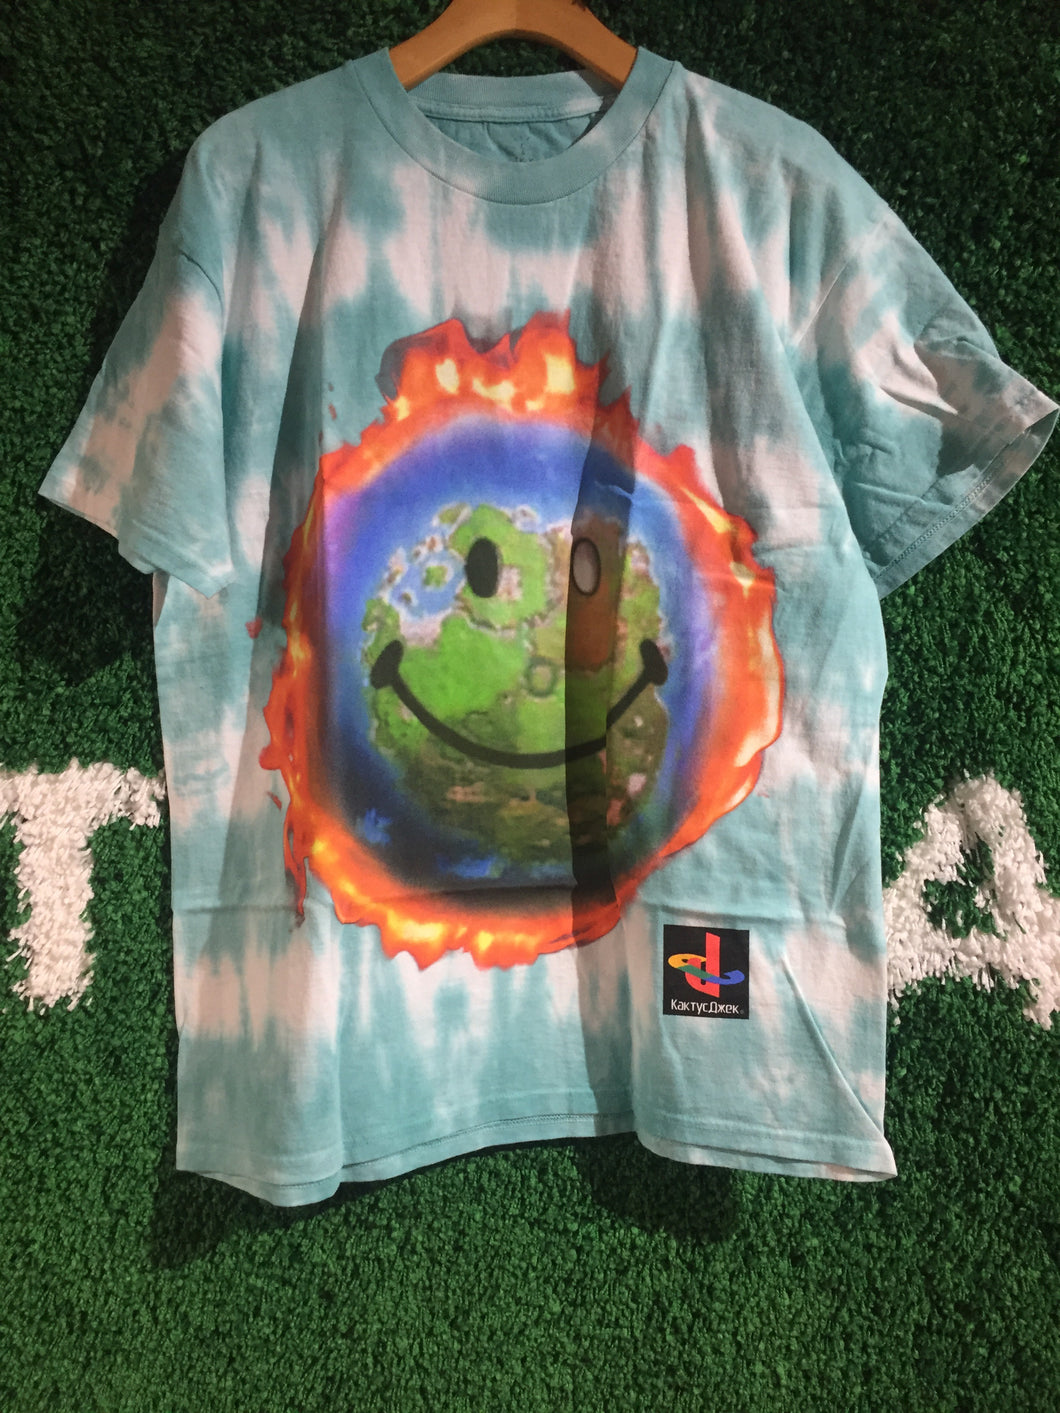 Travis Scott x Fortnite World Shirt